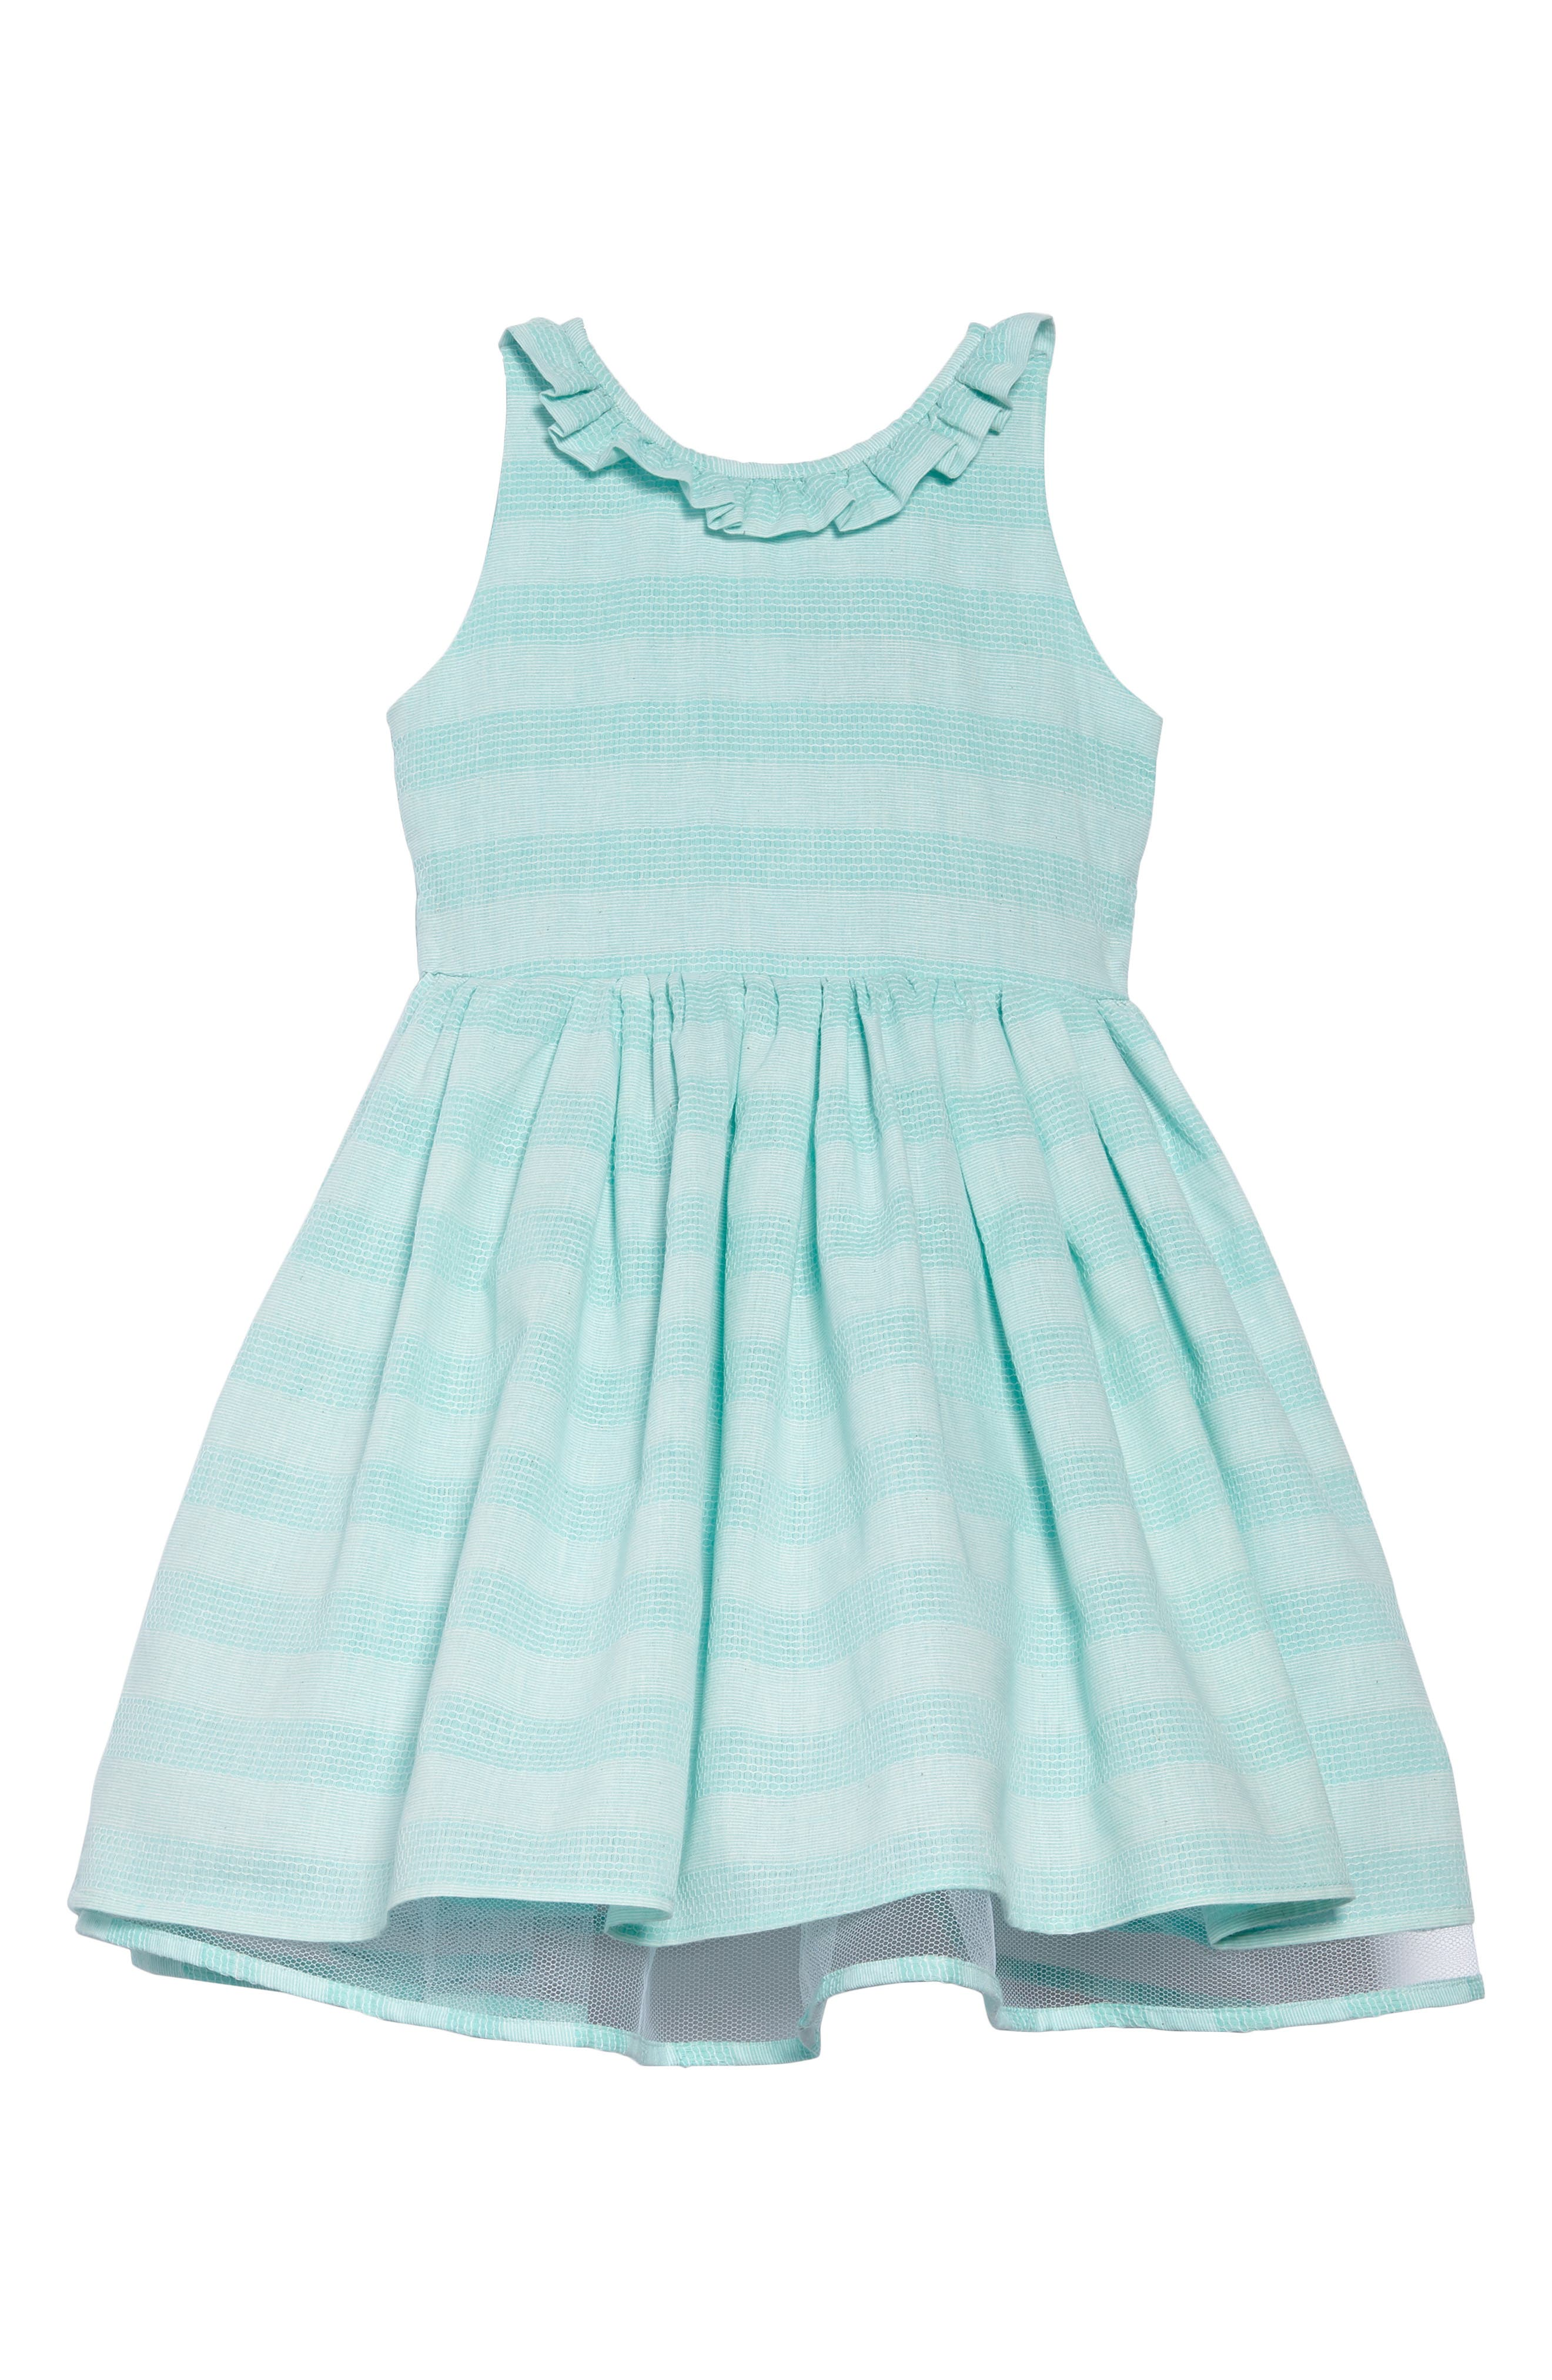 Ava & Yelly Shadow Stripe Party Dress (Toddler Girls & Little Girls)